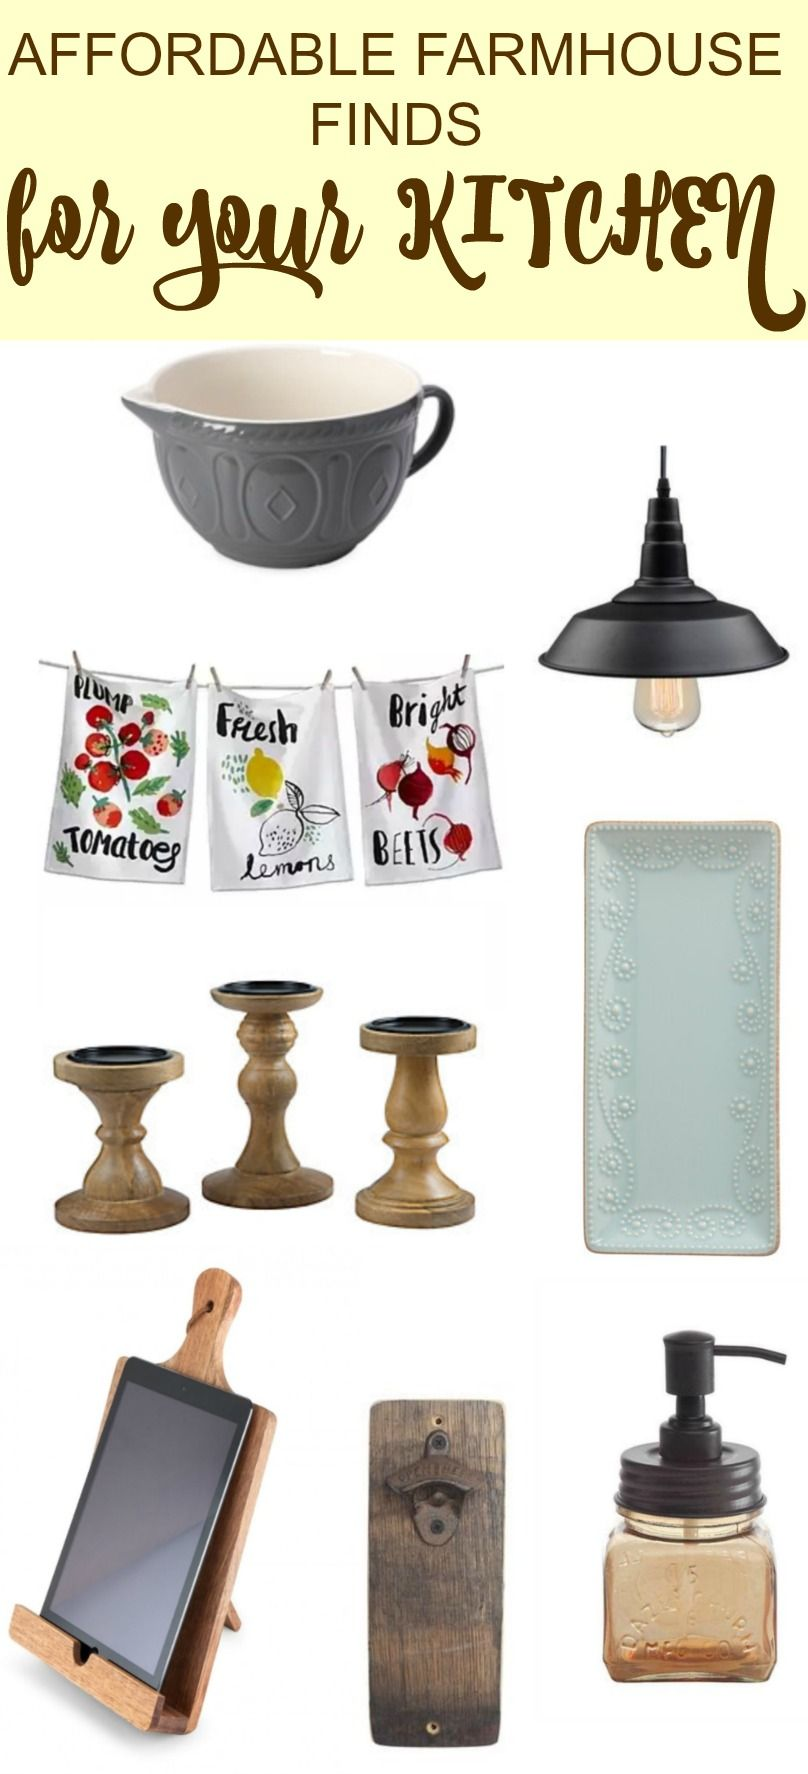 We have found some amazing affordable farmhouse kitchen ...